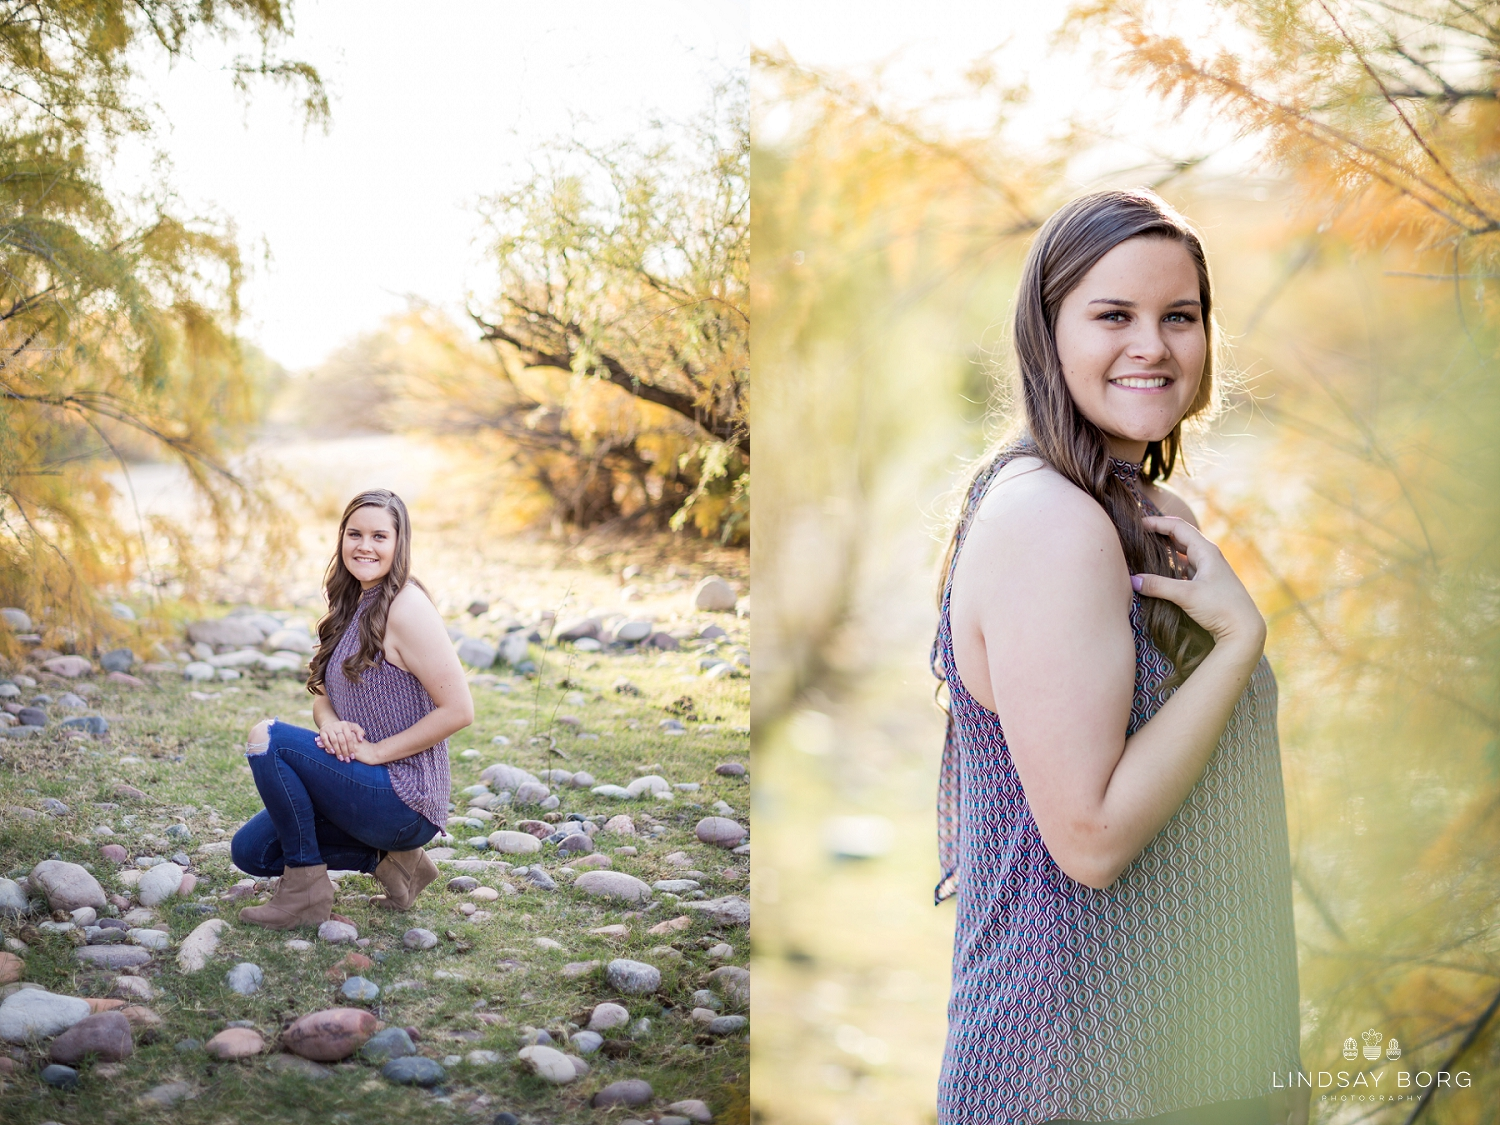 Lindsay-Borg-Photography-arizona-senior-wedding-portrait-photographer-az_0021.jpg